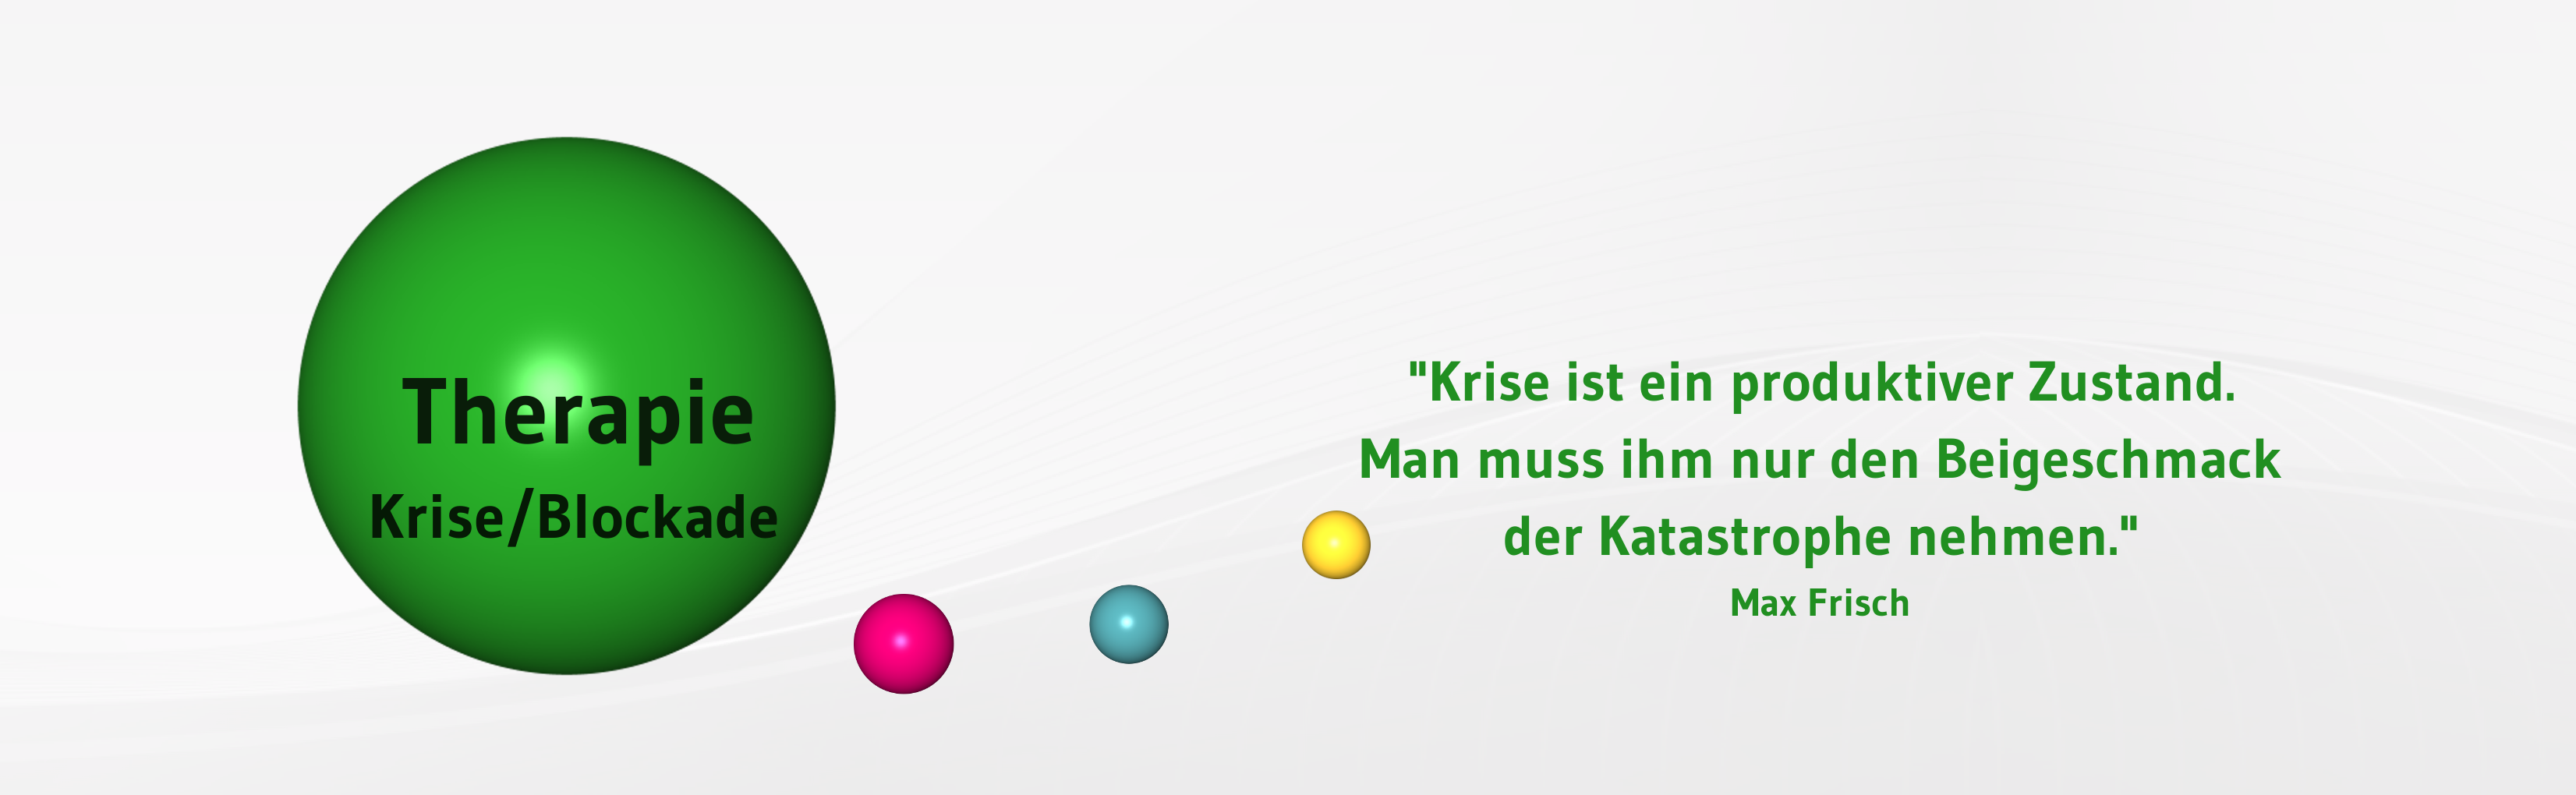 Banner-Therapie-Krise